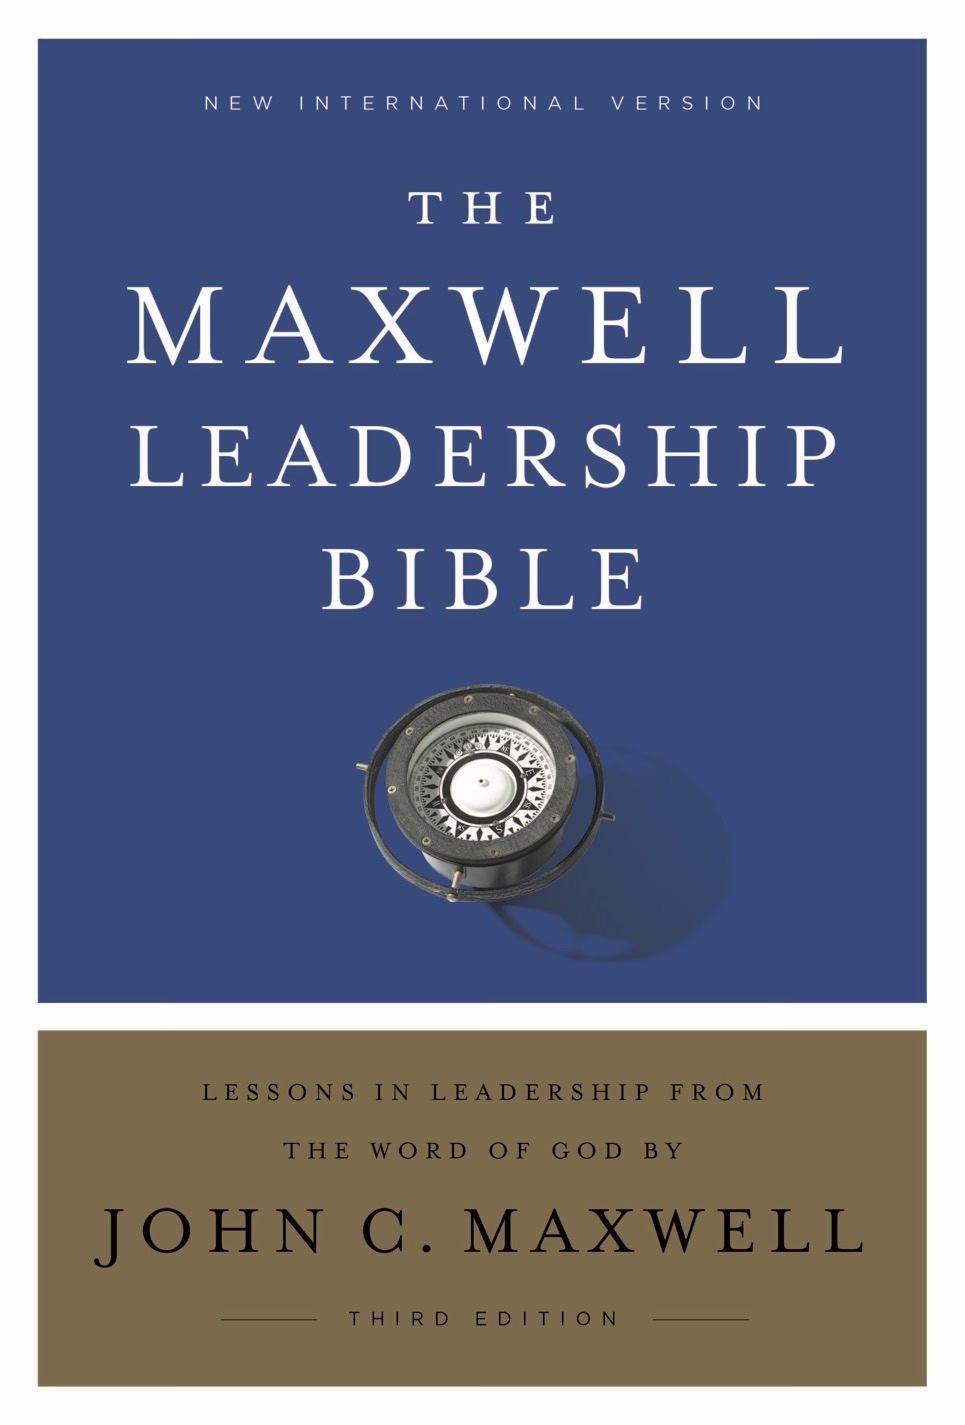 The Maxwell Leadership Bible - Hardcover [NIV] - Third Edition